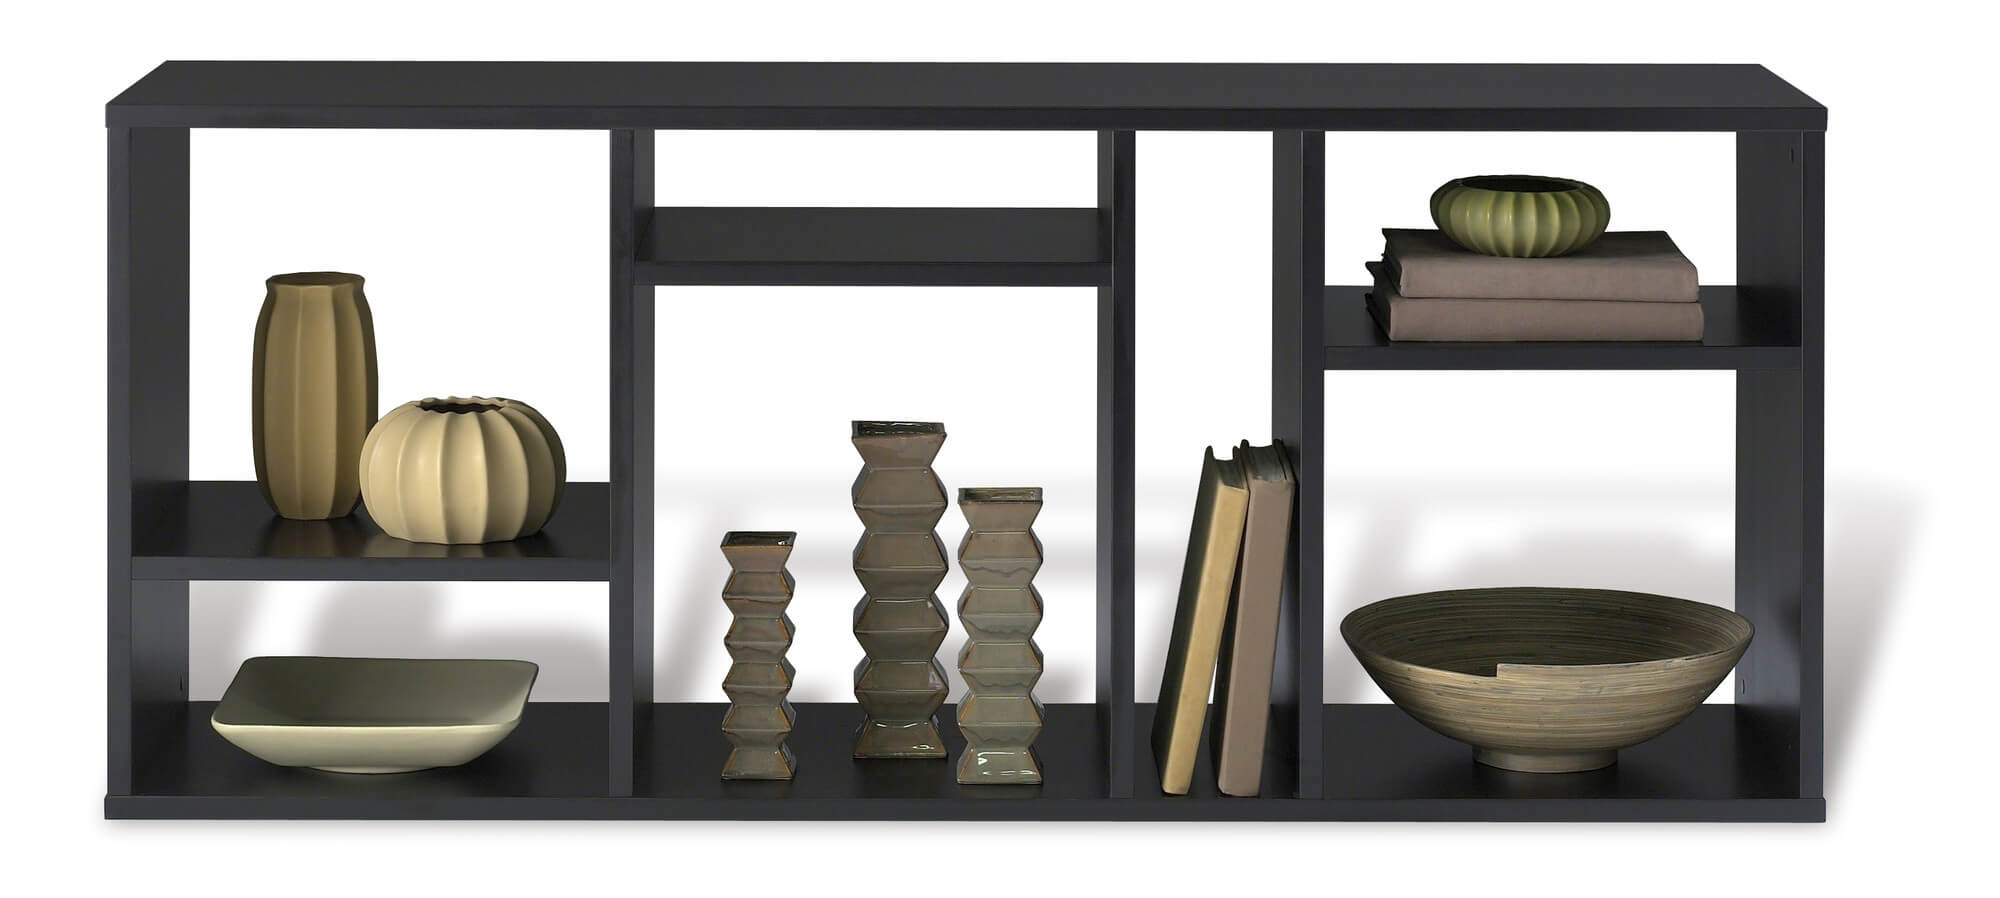 I Like This Asymmetric Horizontally Oriented 6 Cube Modern Shelf The Varying Sized And